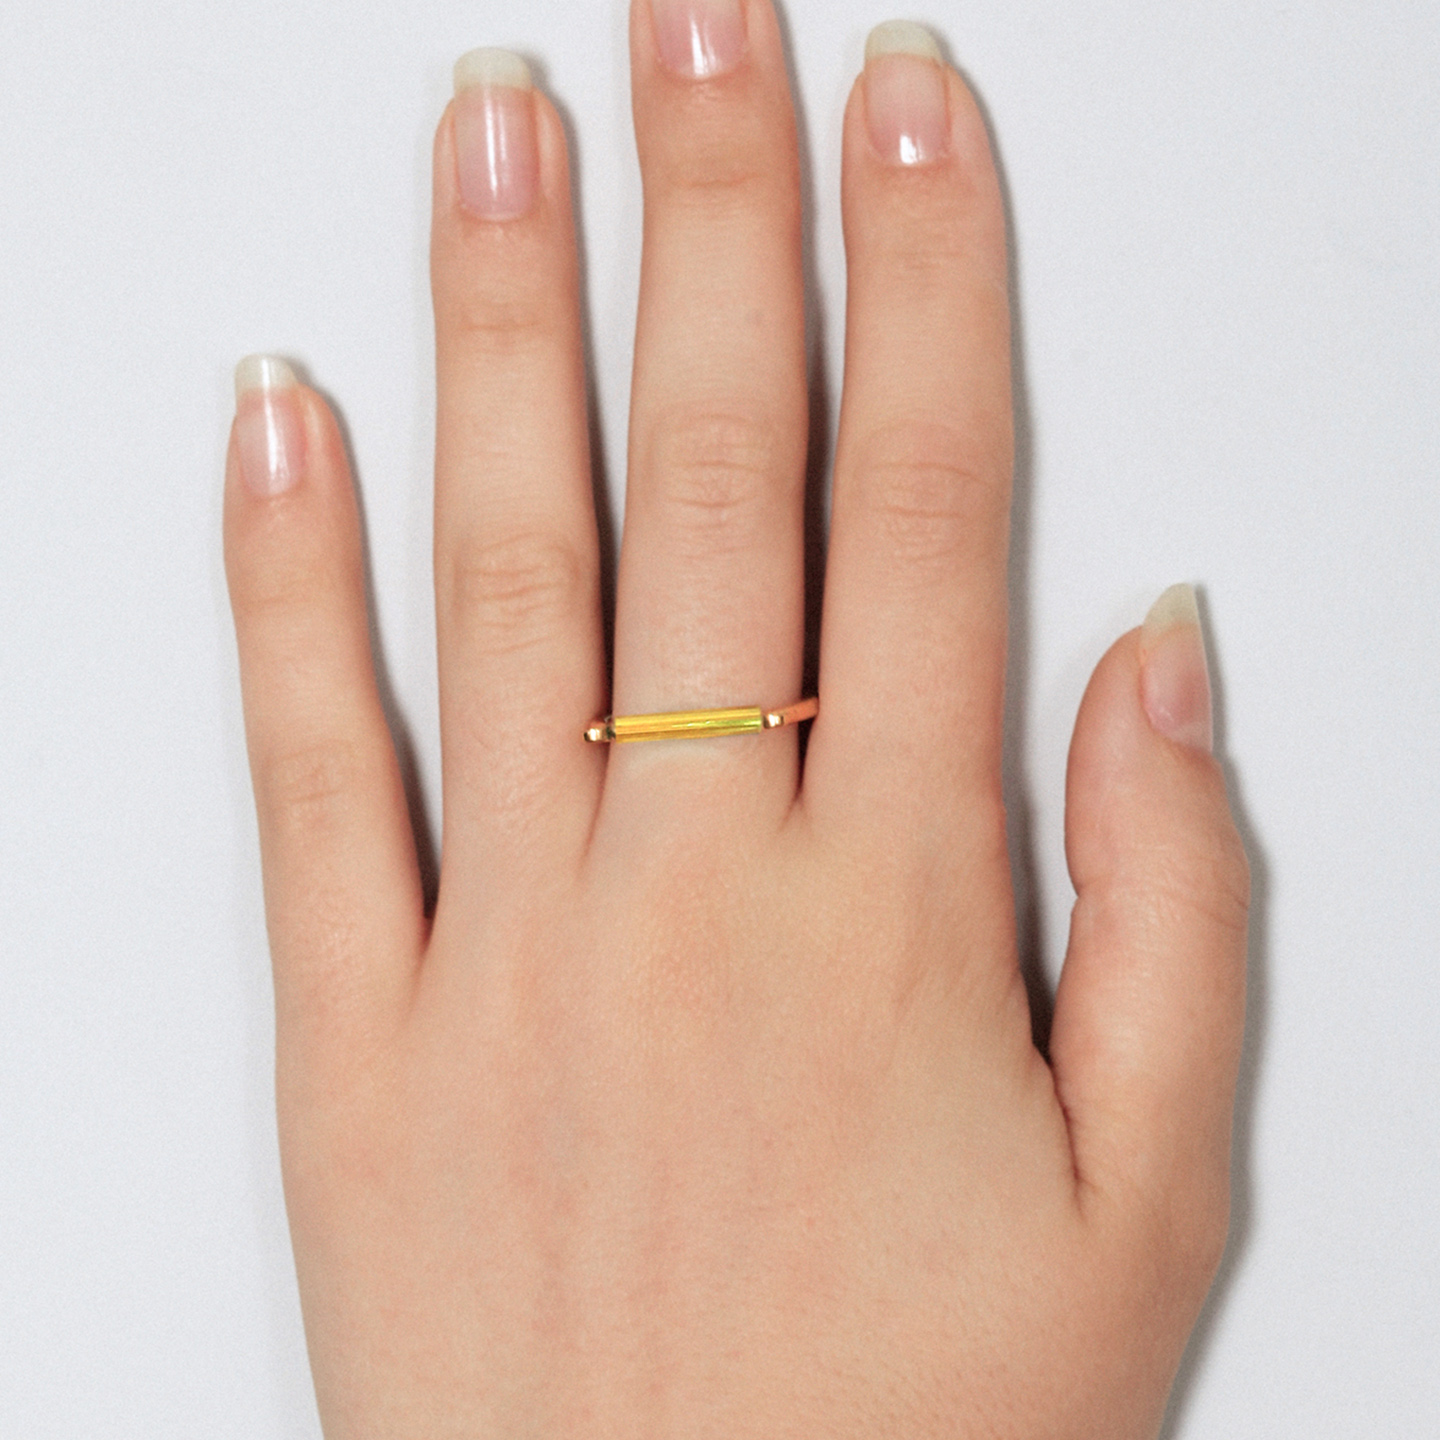 Gold ring with minimalist neon lemon bar